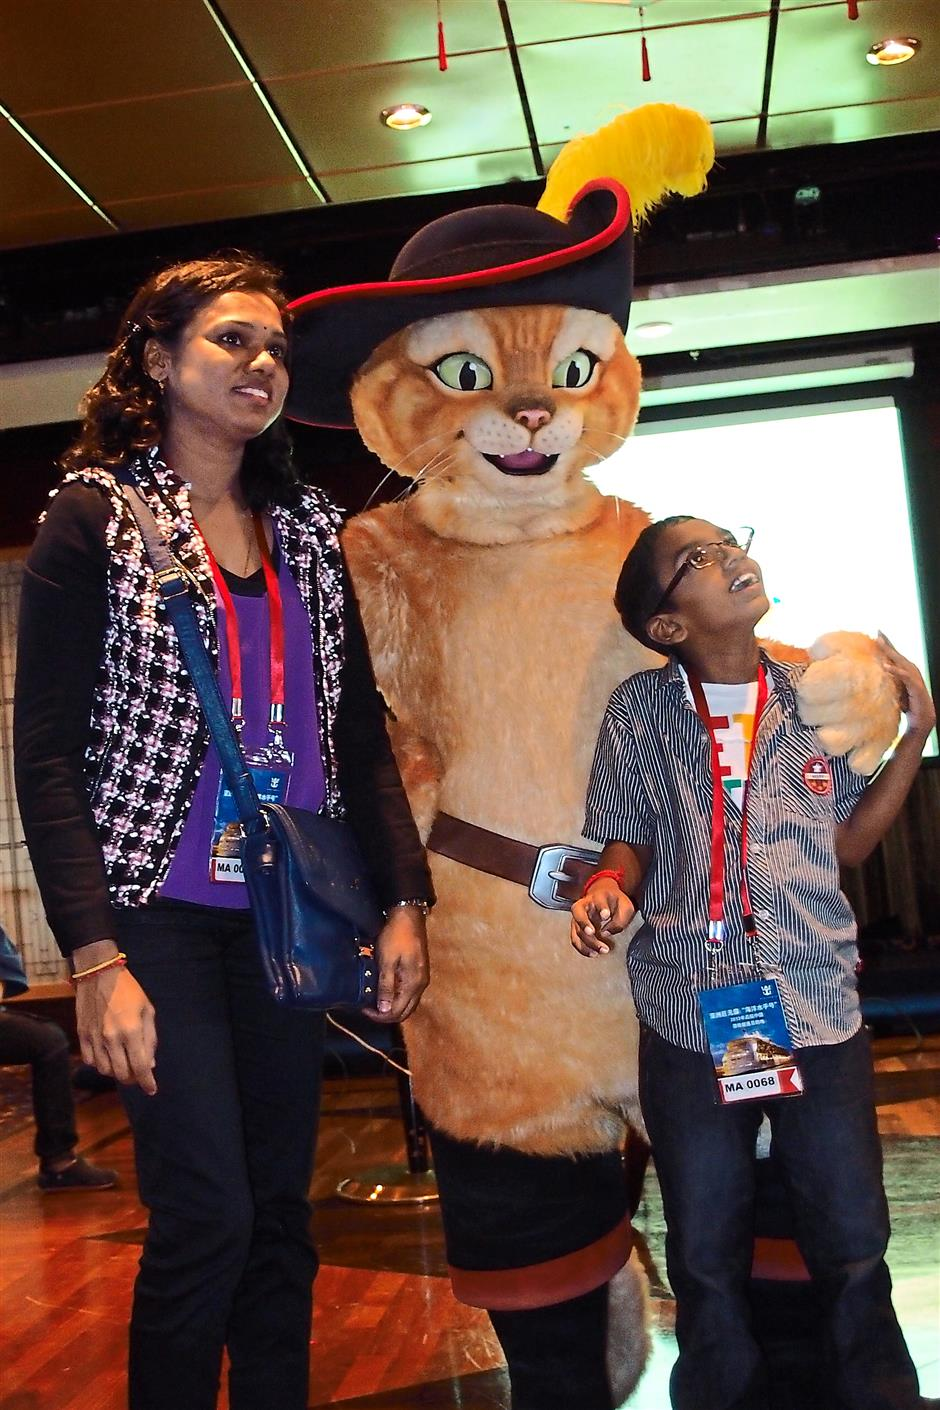 Sumathi (left) and her son taking a picture with the Puss In Boot character.